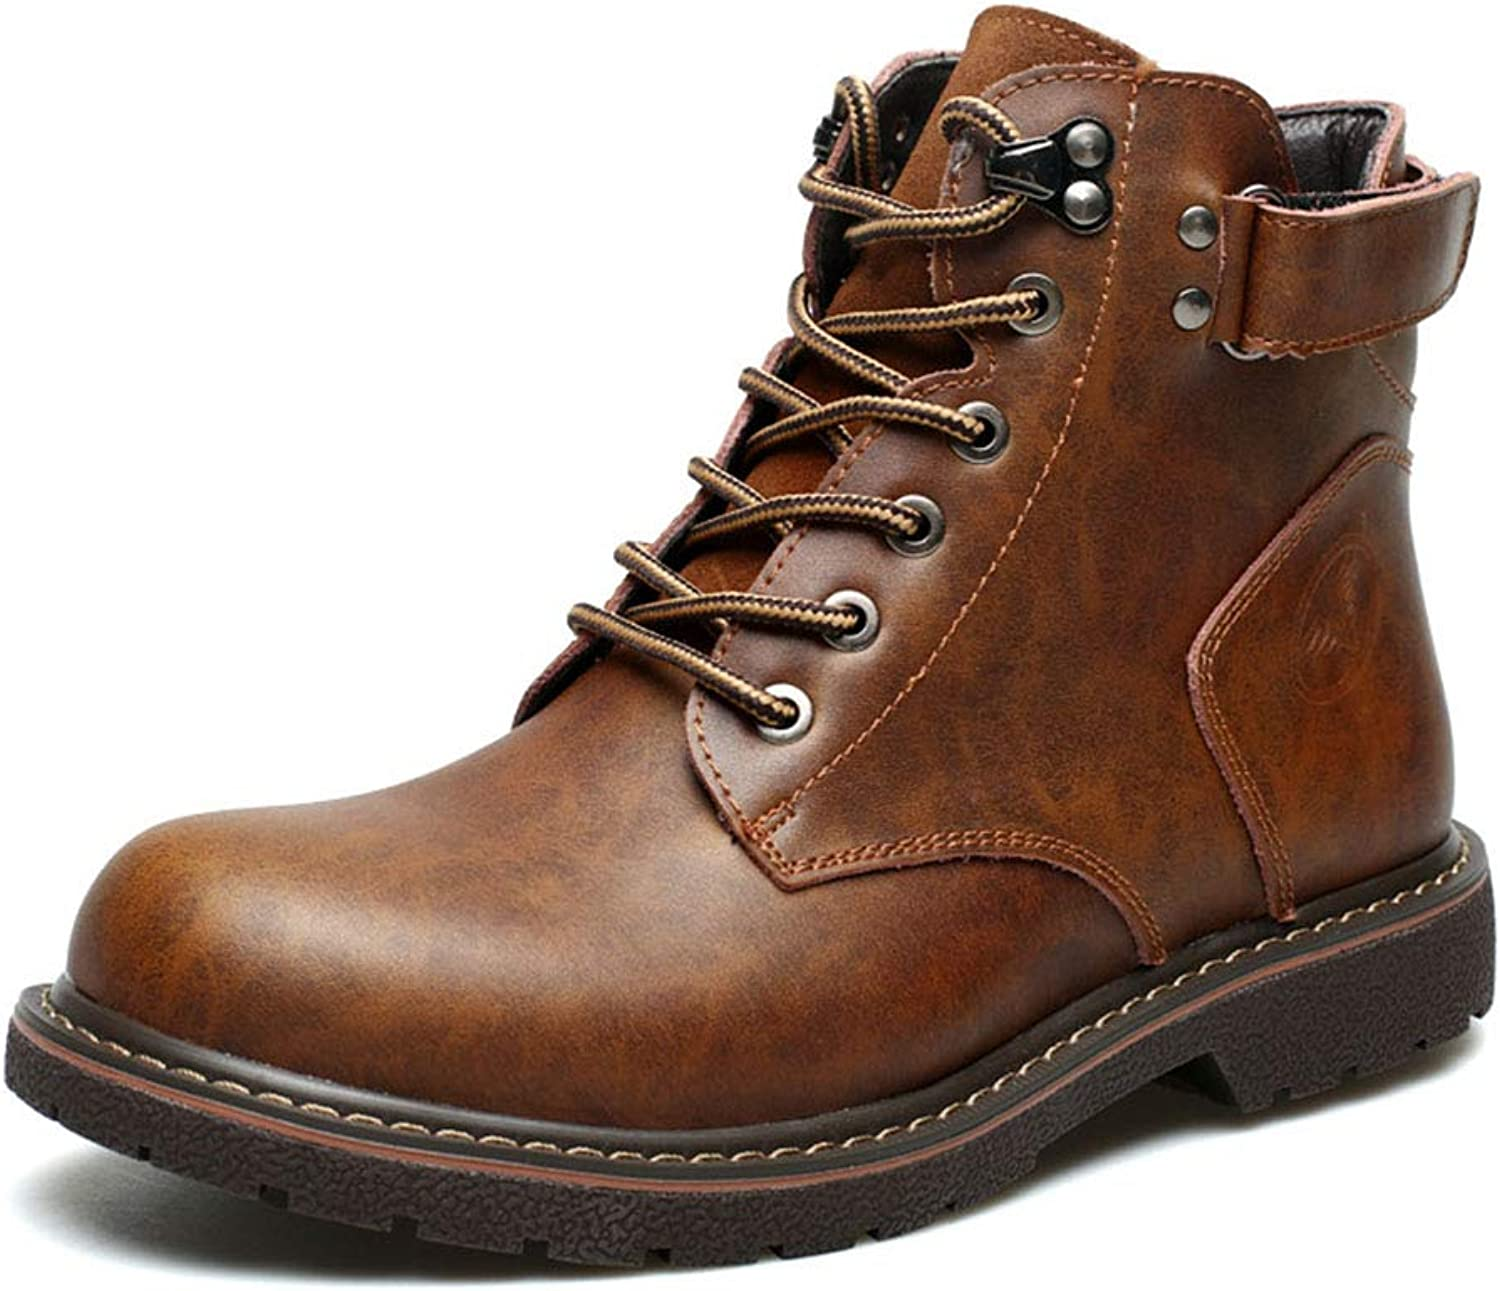 Gfphfm Men ' S Stiefel, New New New Spring Fall Leder Martin Stiefel Leisure Leder Mode Thick Bottom Tooling Chelsea Stiefel,A,41  9e3d82